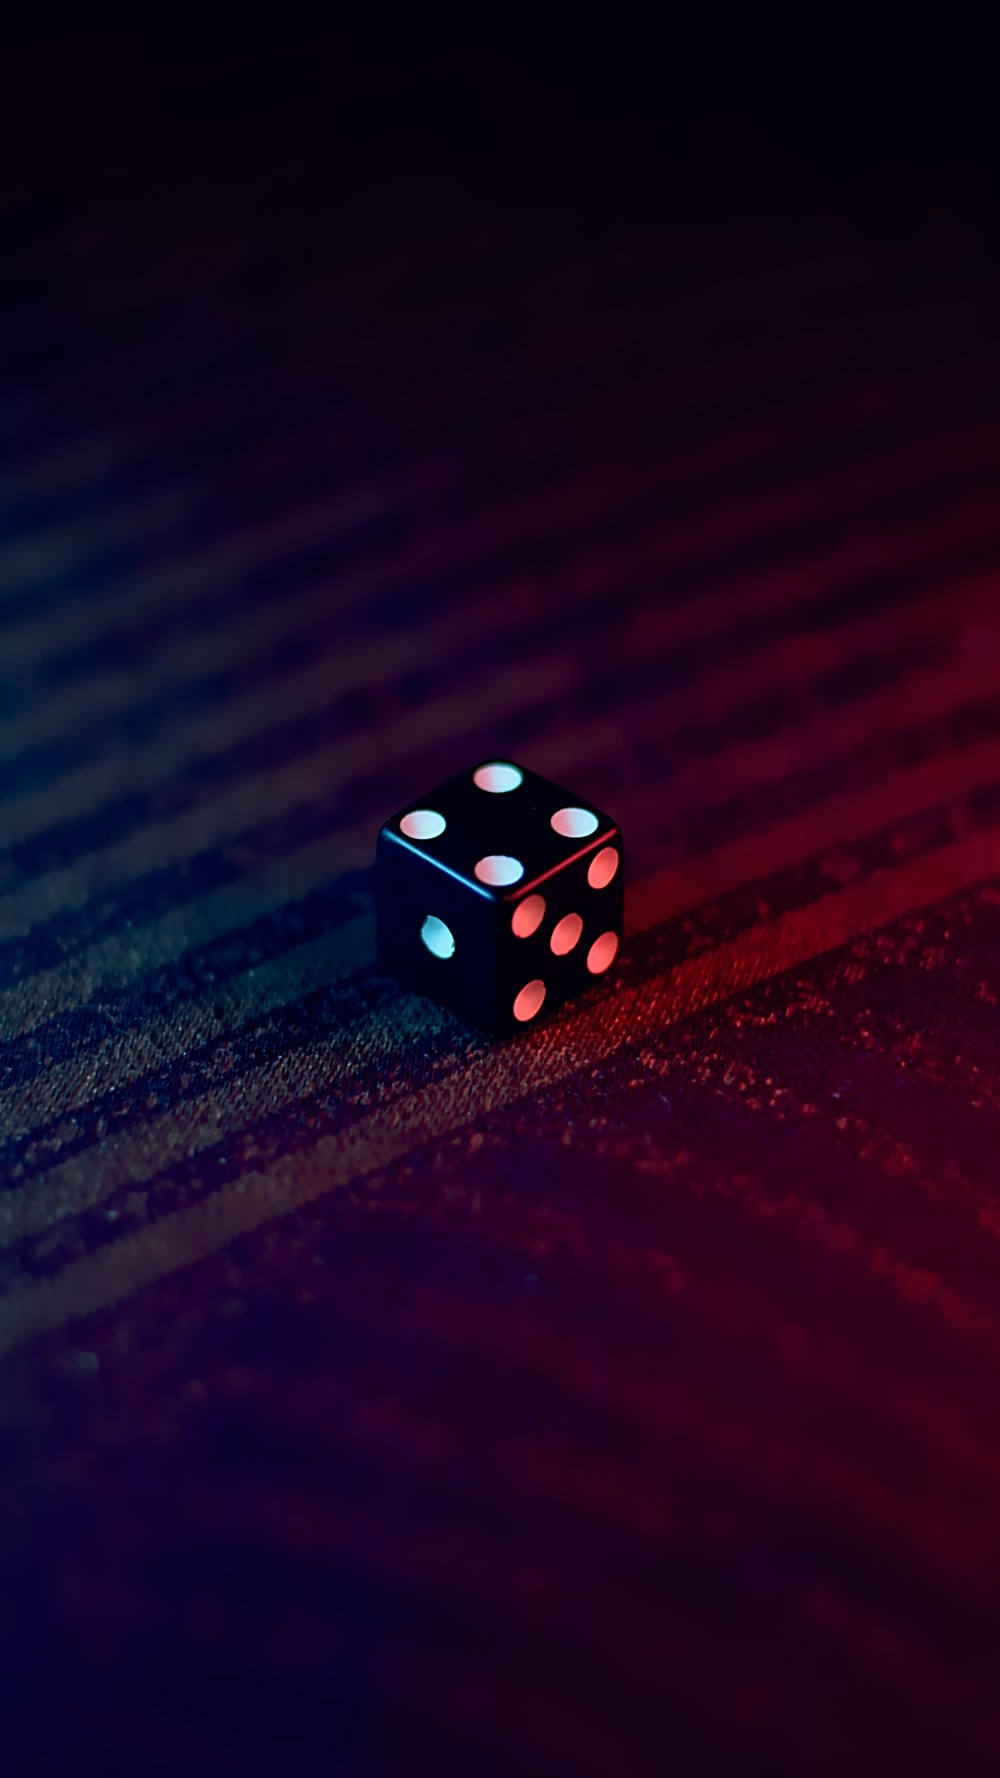 white and black dice on red textile